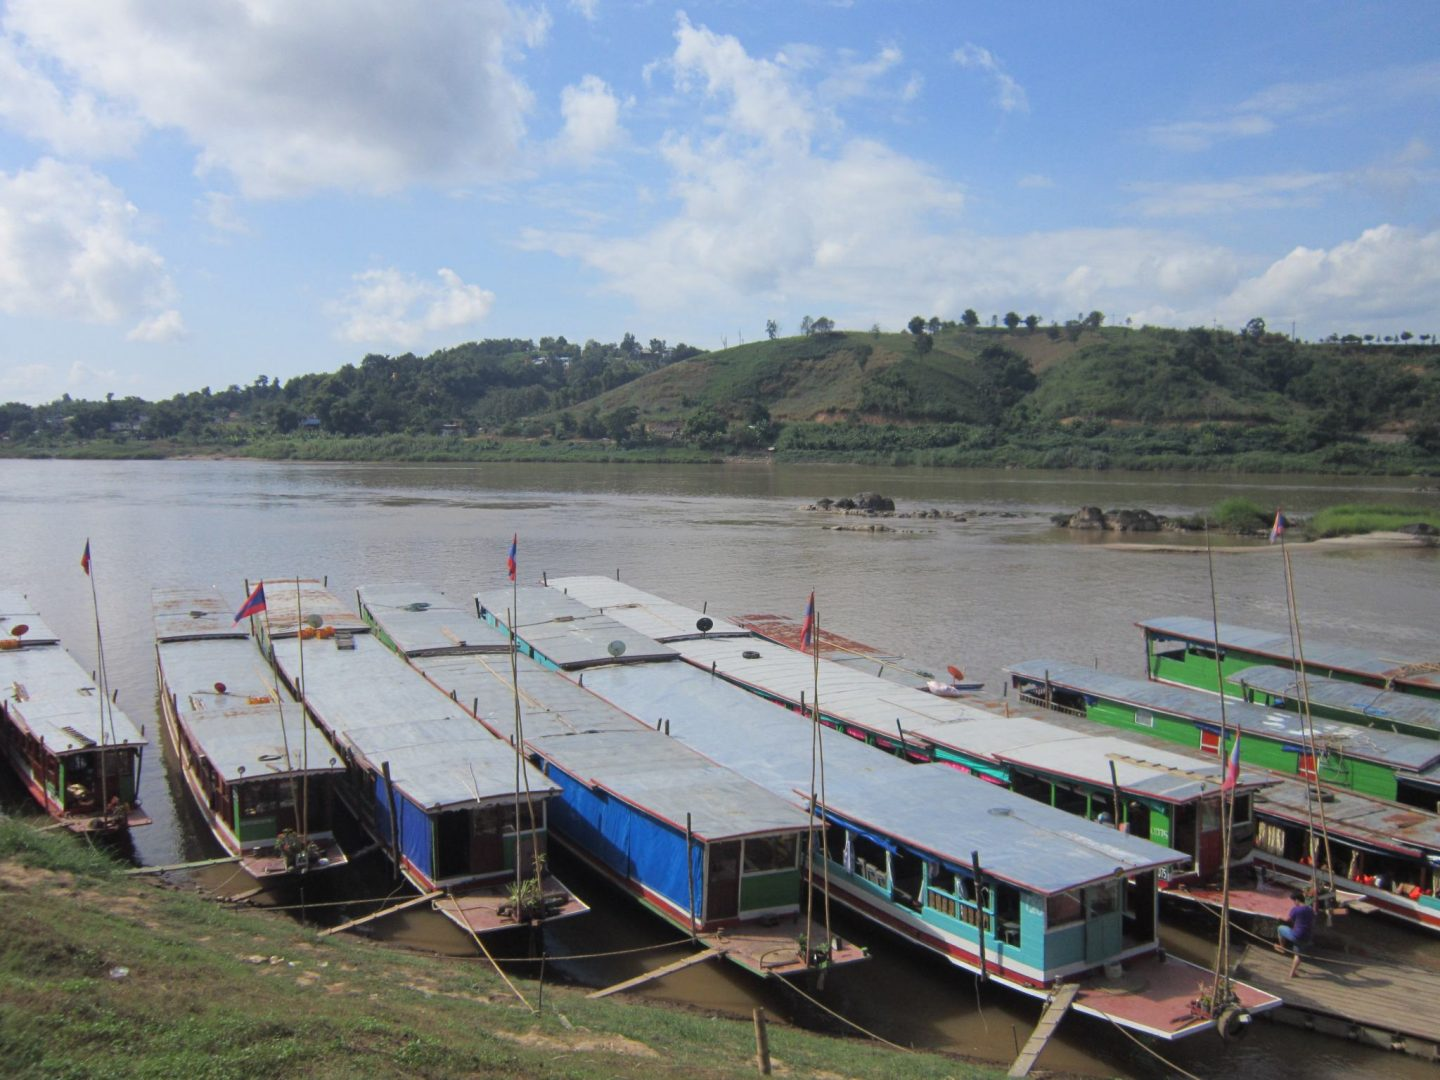 Boarding the slow boat in Huay Xai  - 1st stop on this  Laos Itinerary